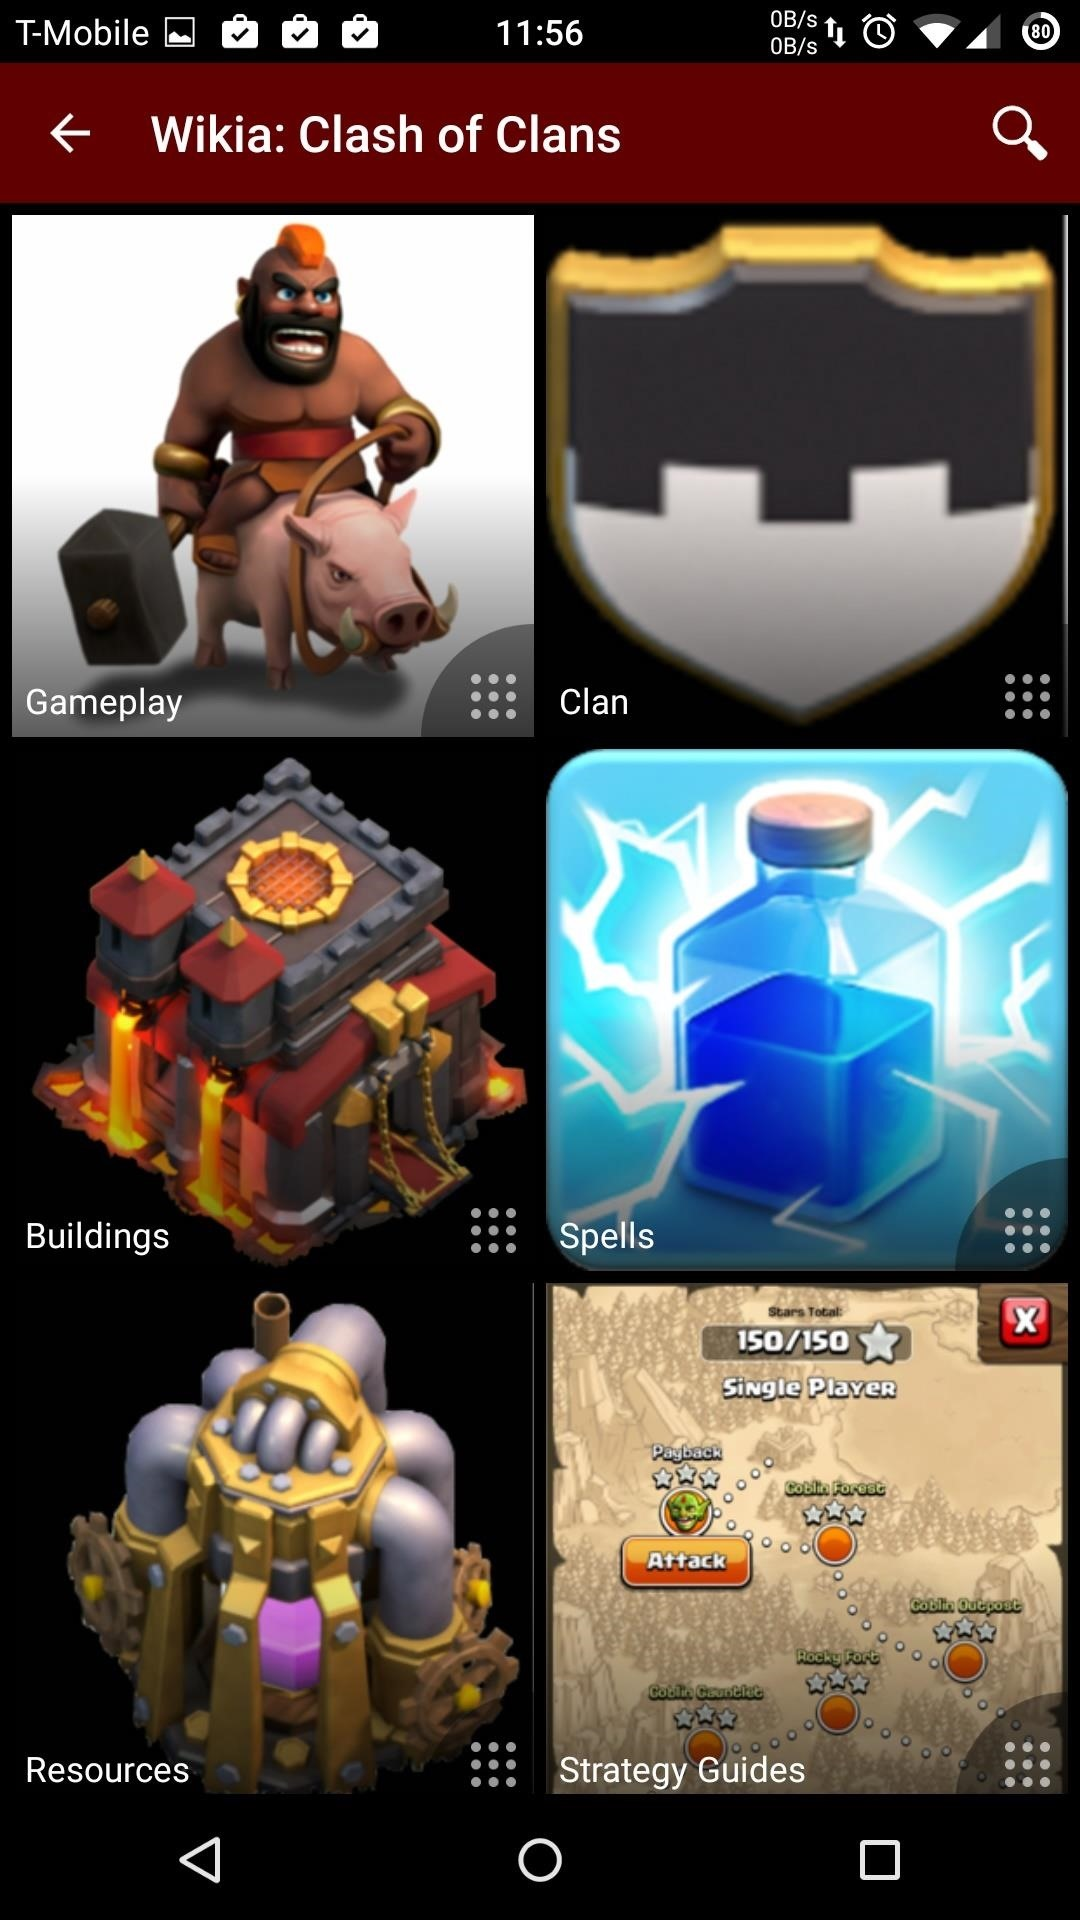 How to Max Out Your Clash of Clans Village Faster on Android